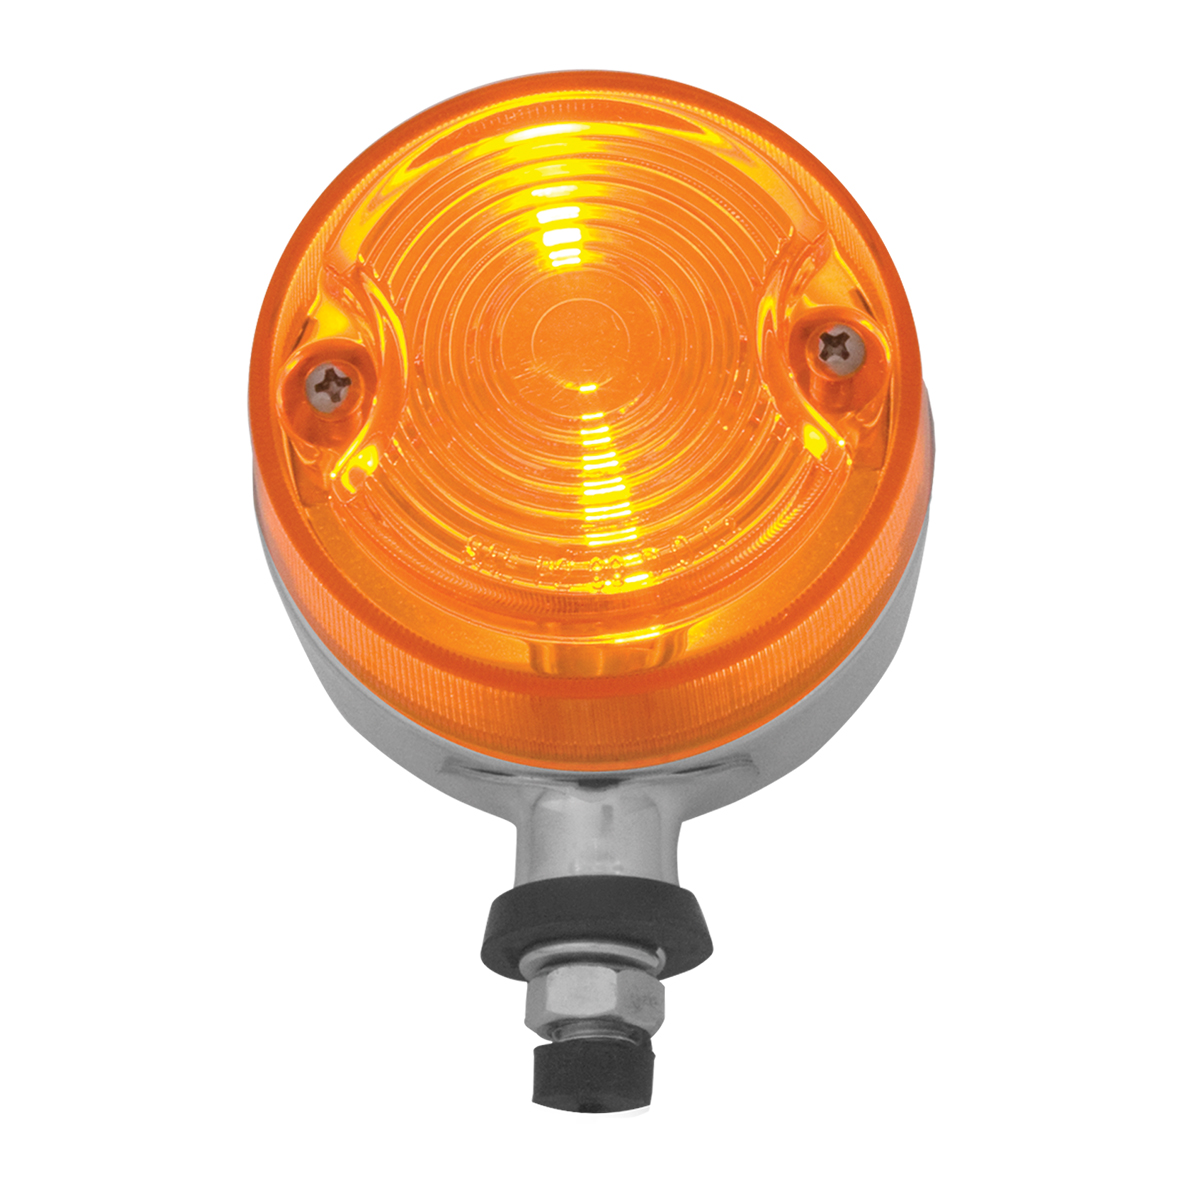 #83240 Single Face Auxiliary Projected Pedestal Marker Amber Light w/S.S. Rim - Front View